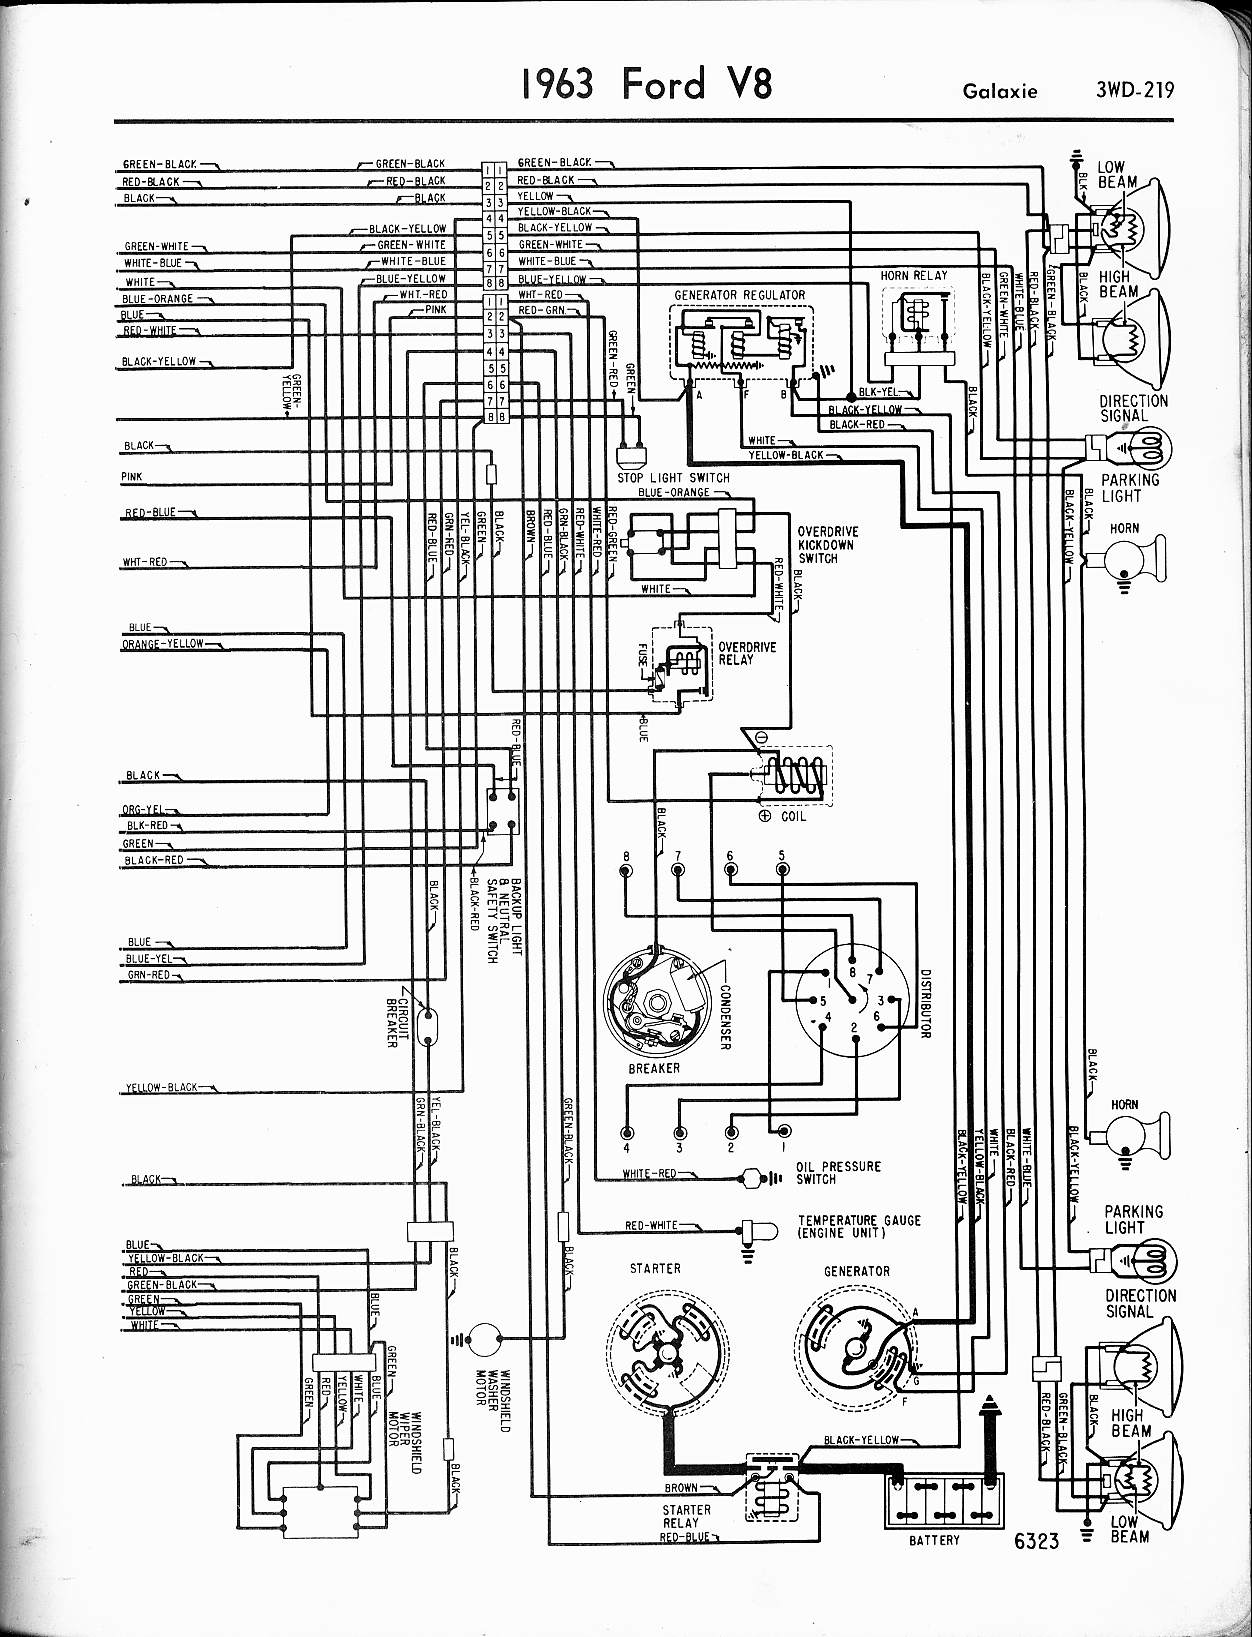 CS0g 9975 also Ignition Coil Wiring Diagram also Discussion C4625 ds672744 also 1969 Mustang Wiring Diagram also Chevy Impala 3 8 Front Engine Diagram. on 65 mustang fuse block